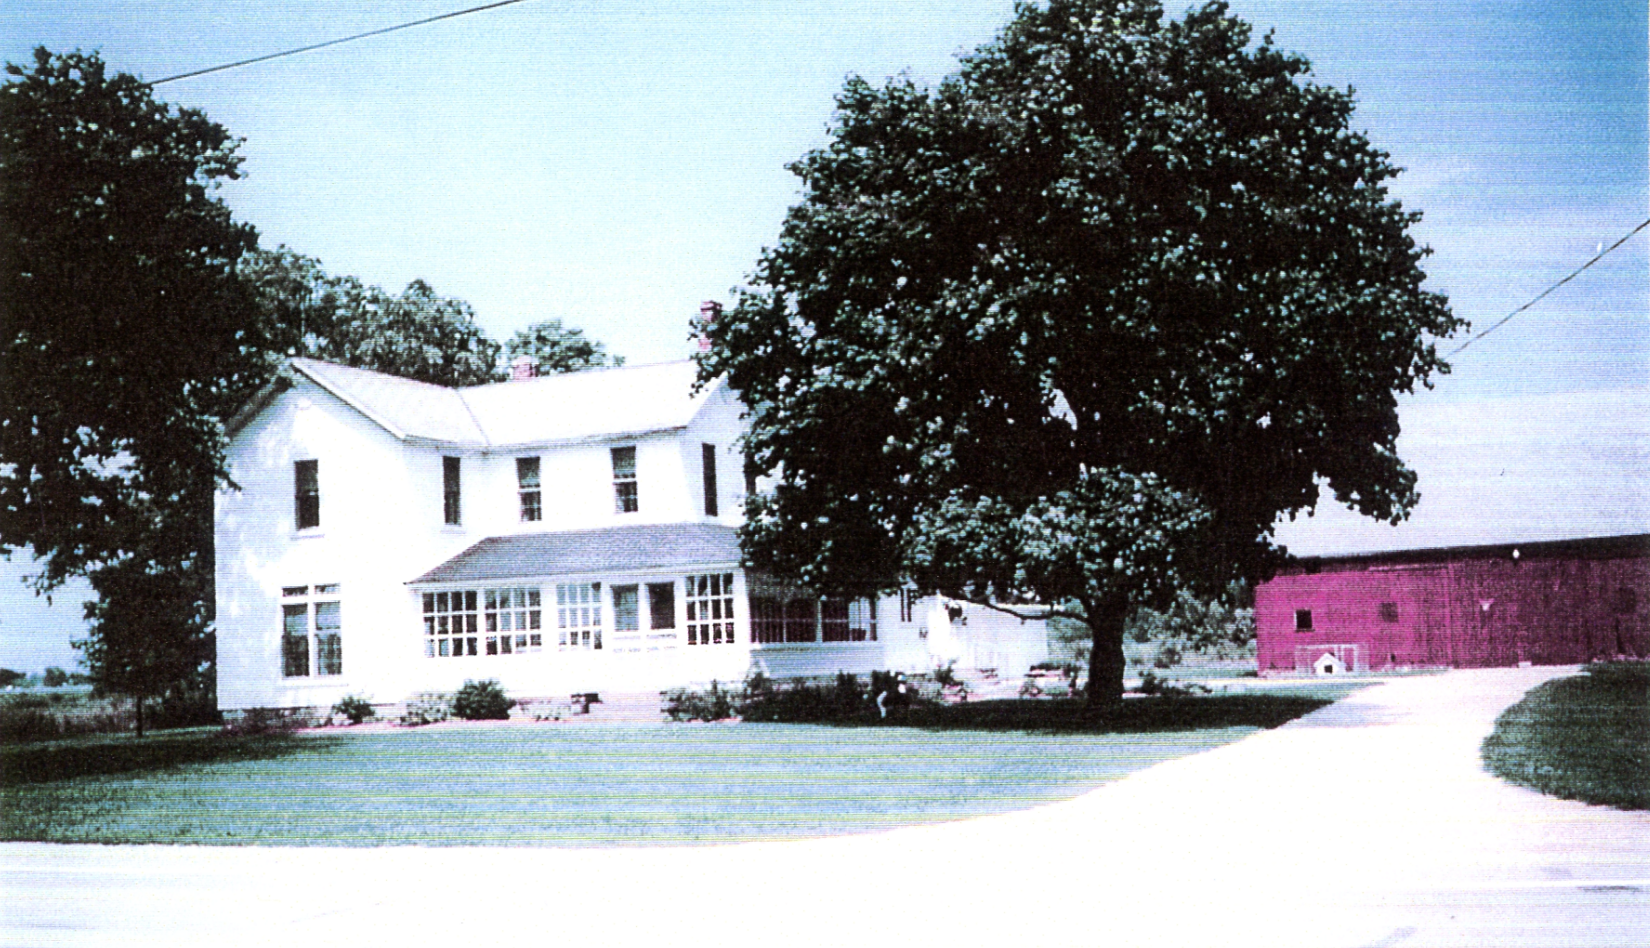 Wight home in the 1970's